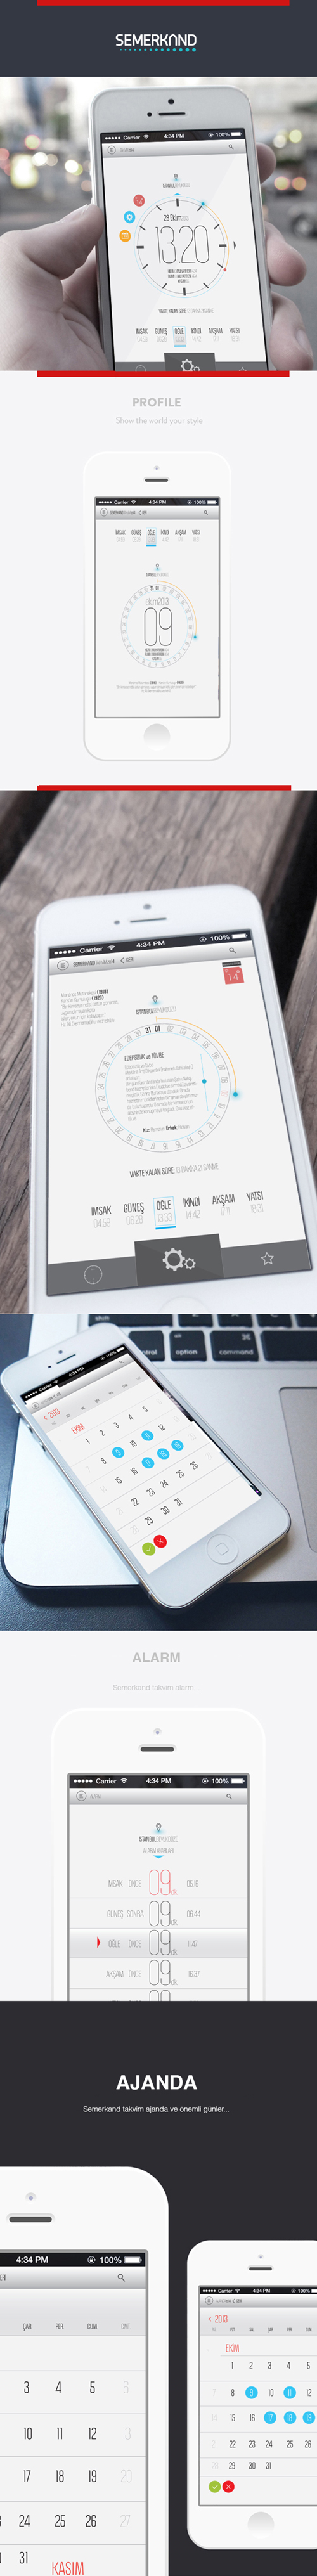 Amazing Mobile App UI Designs with Ultimate User Experience - 5